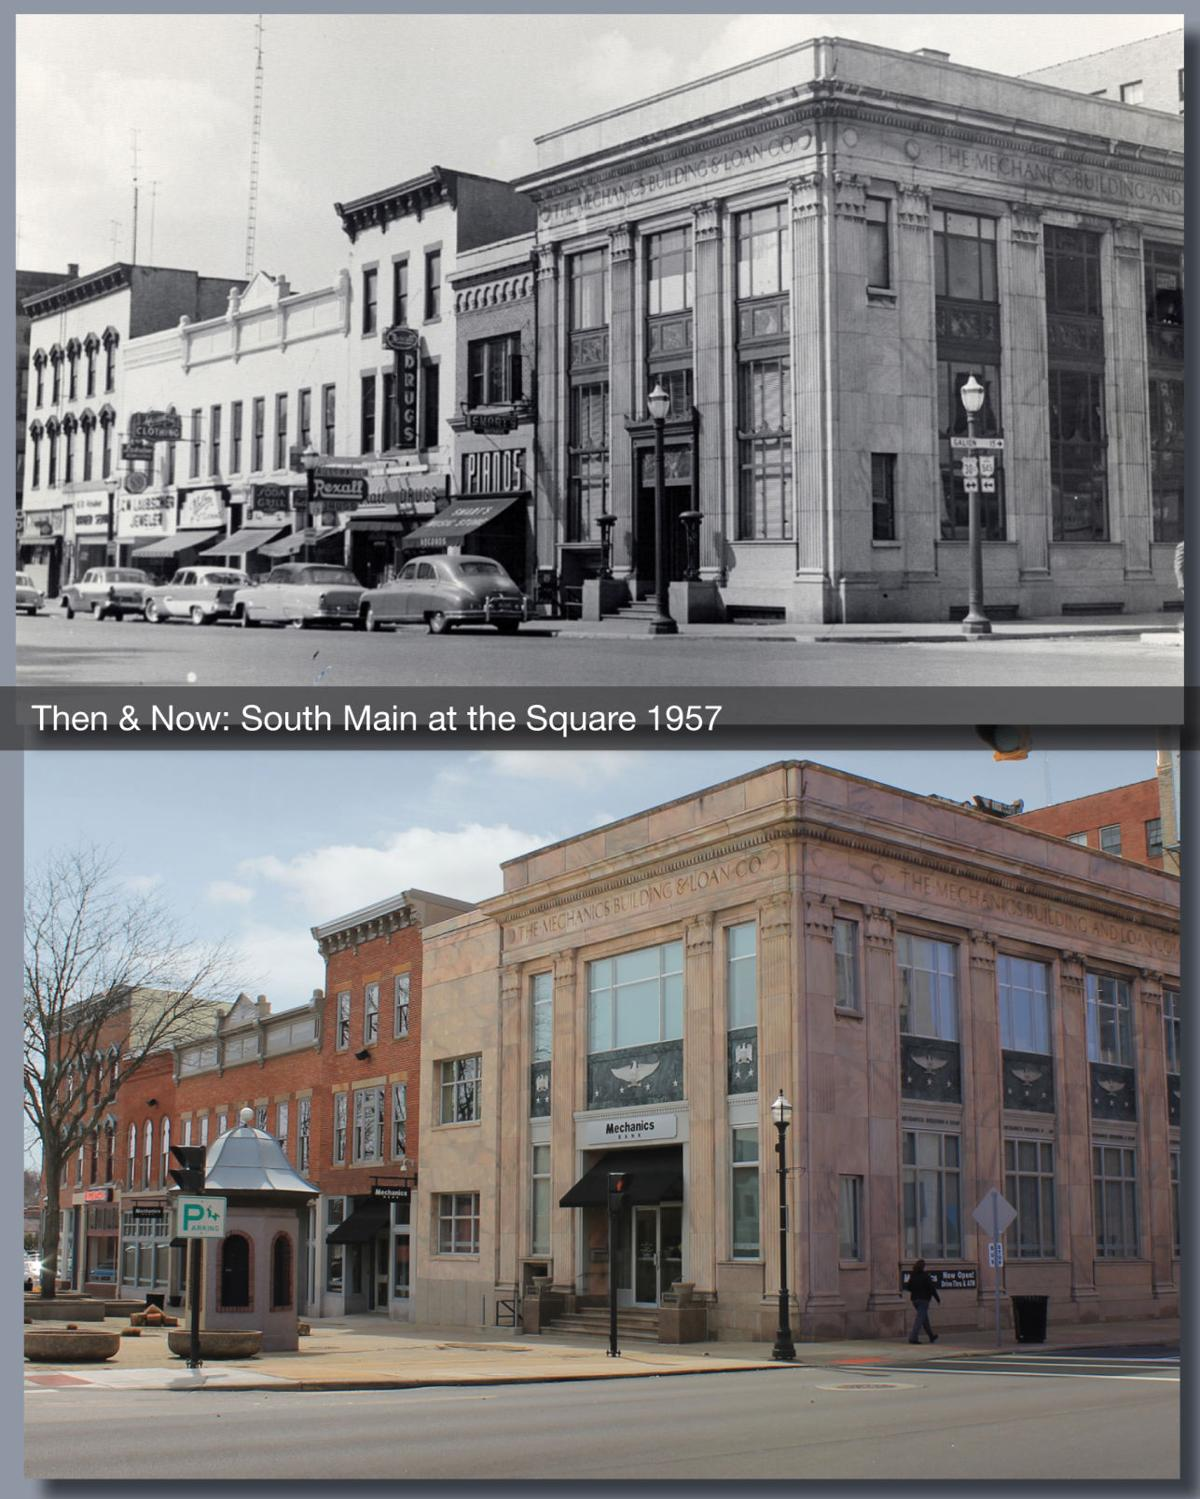 Then & Now: South Main @ the Square 1957